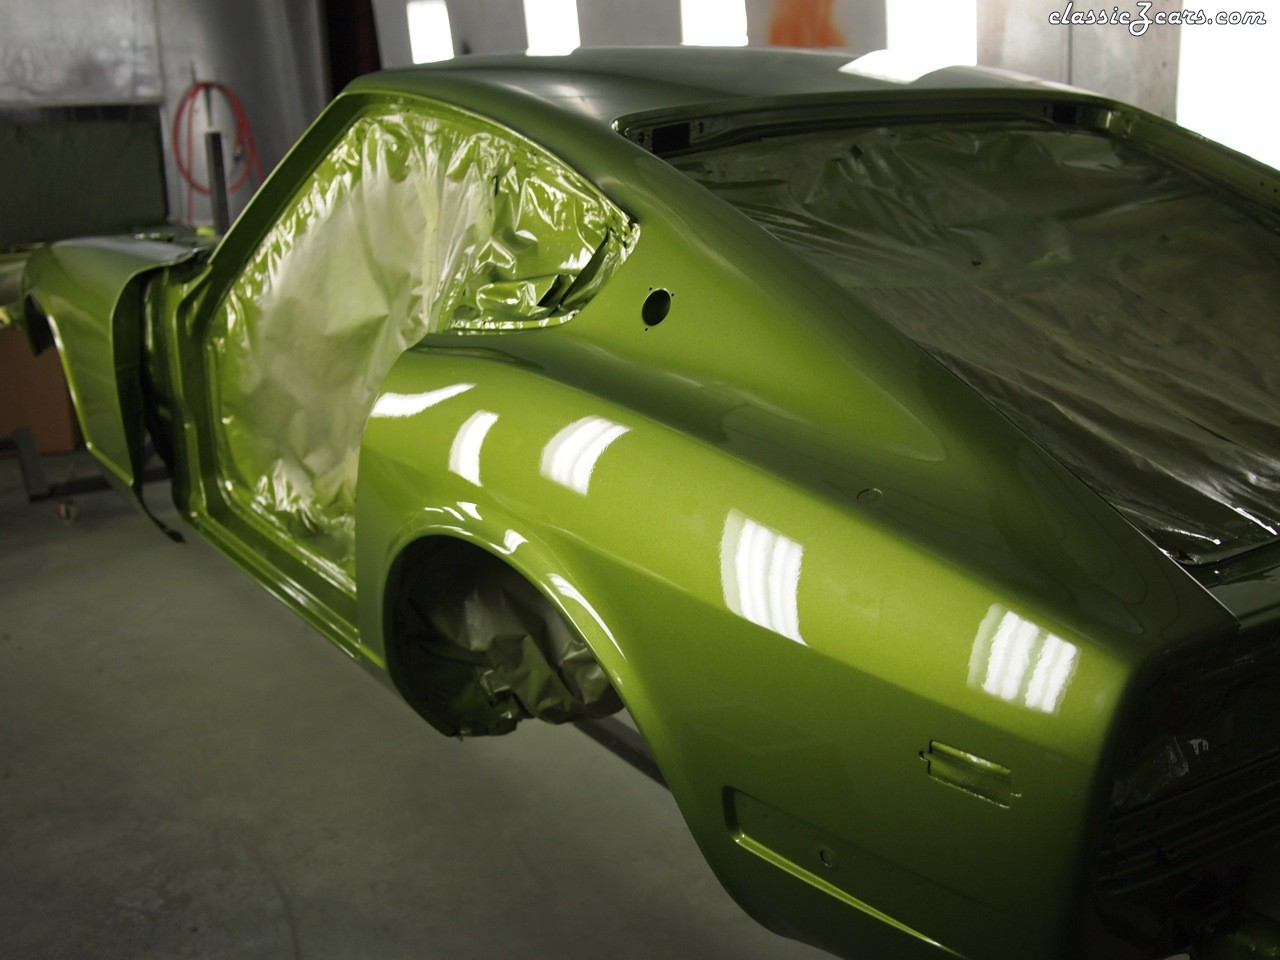 glamourclear on 113 avocado green body work and paint the classic zcar club